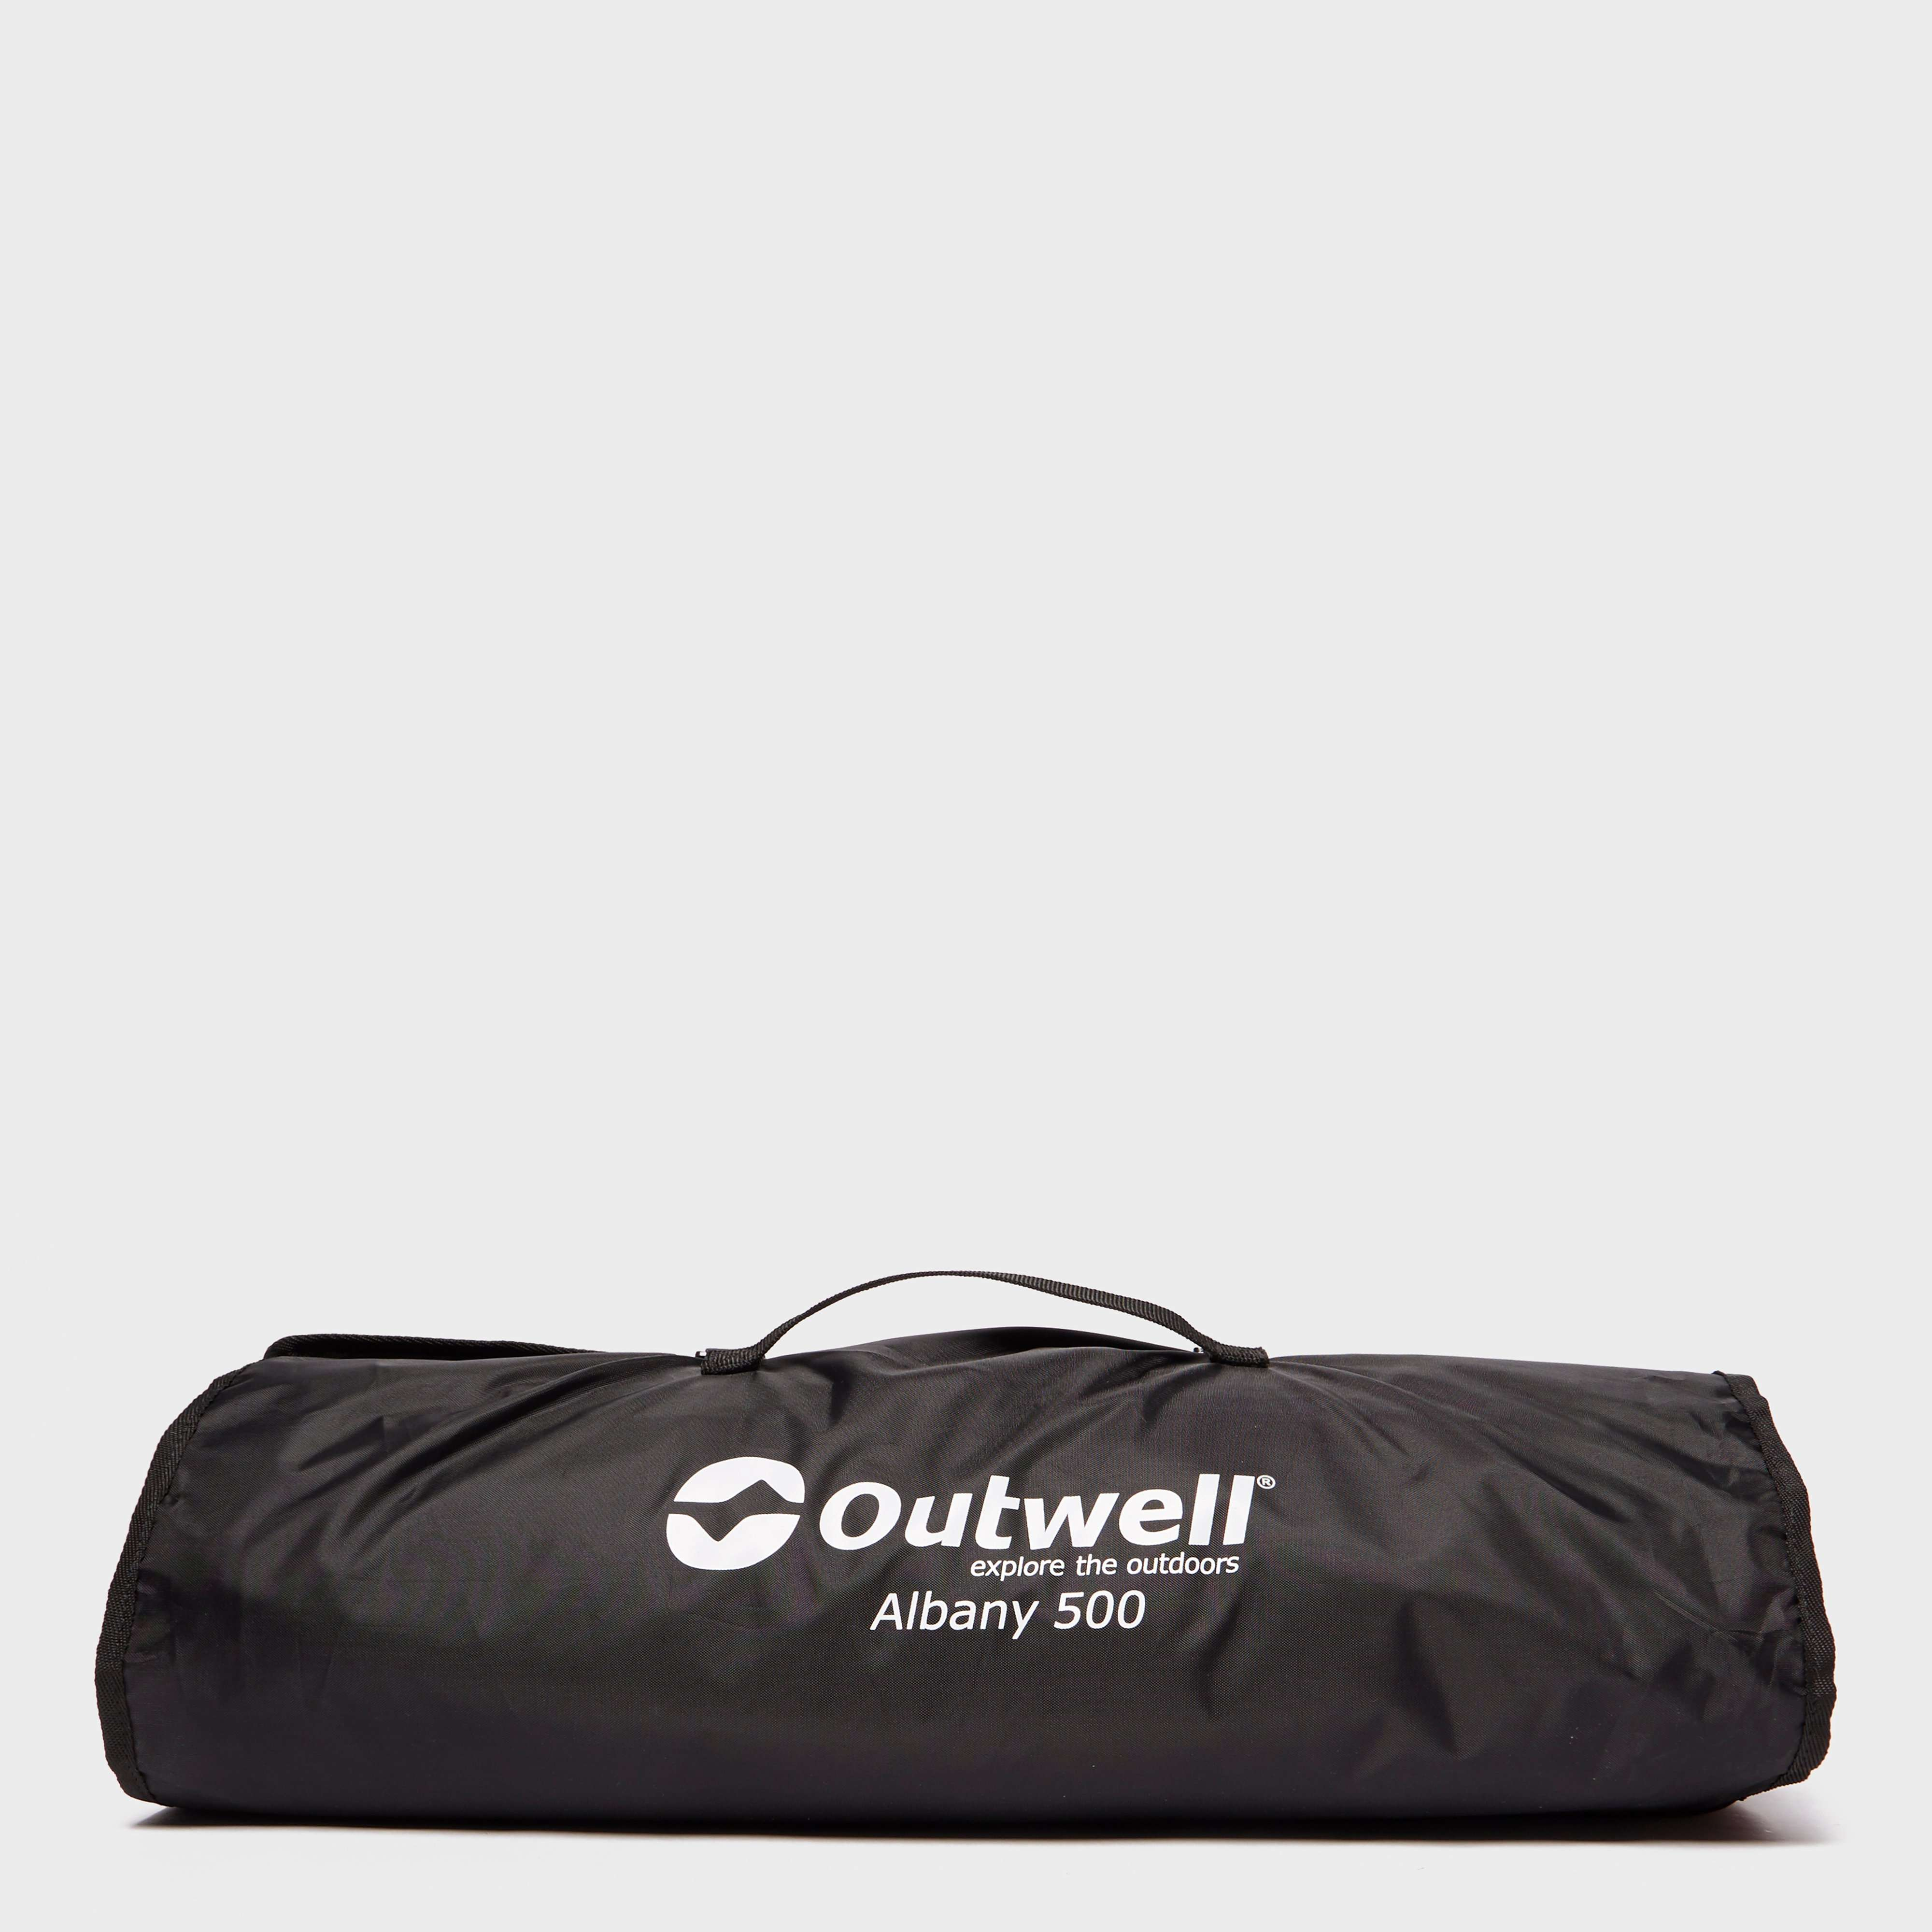 OUTWELL Albany 500 Fleece Tent Carpet